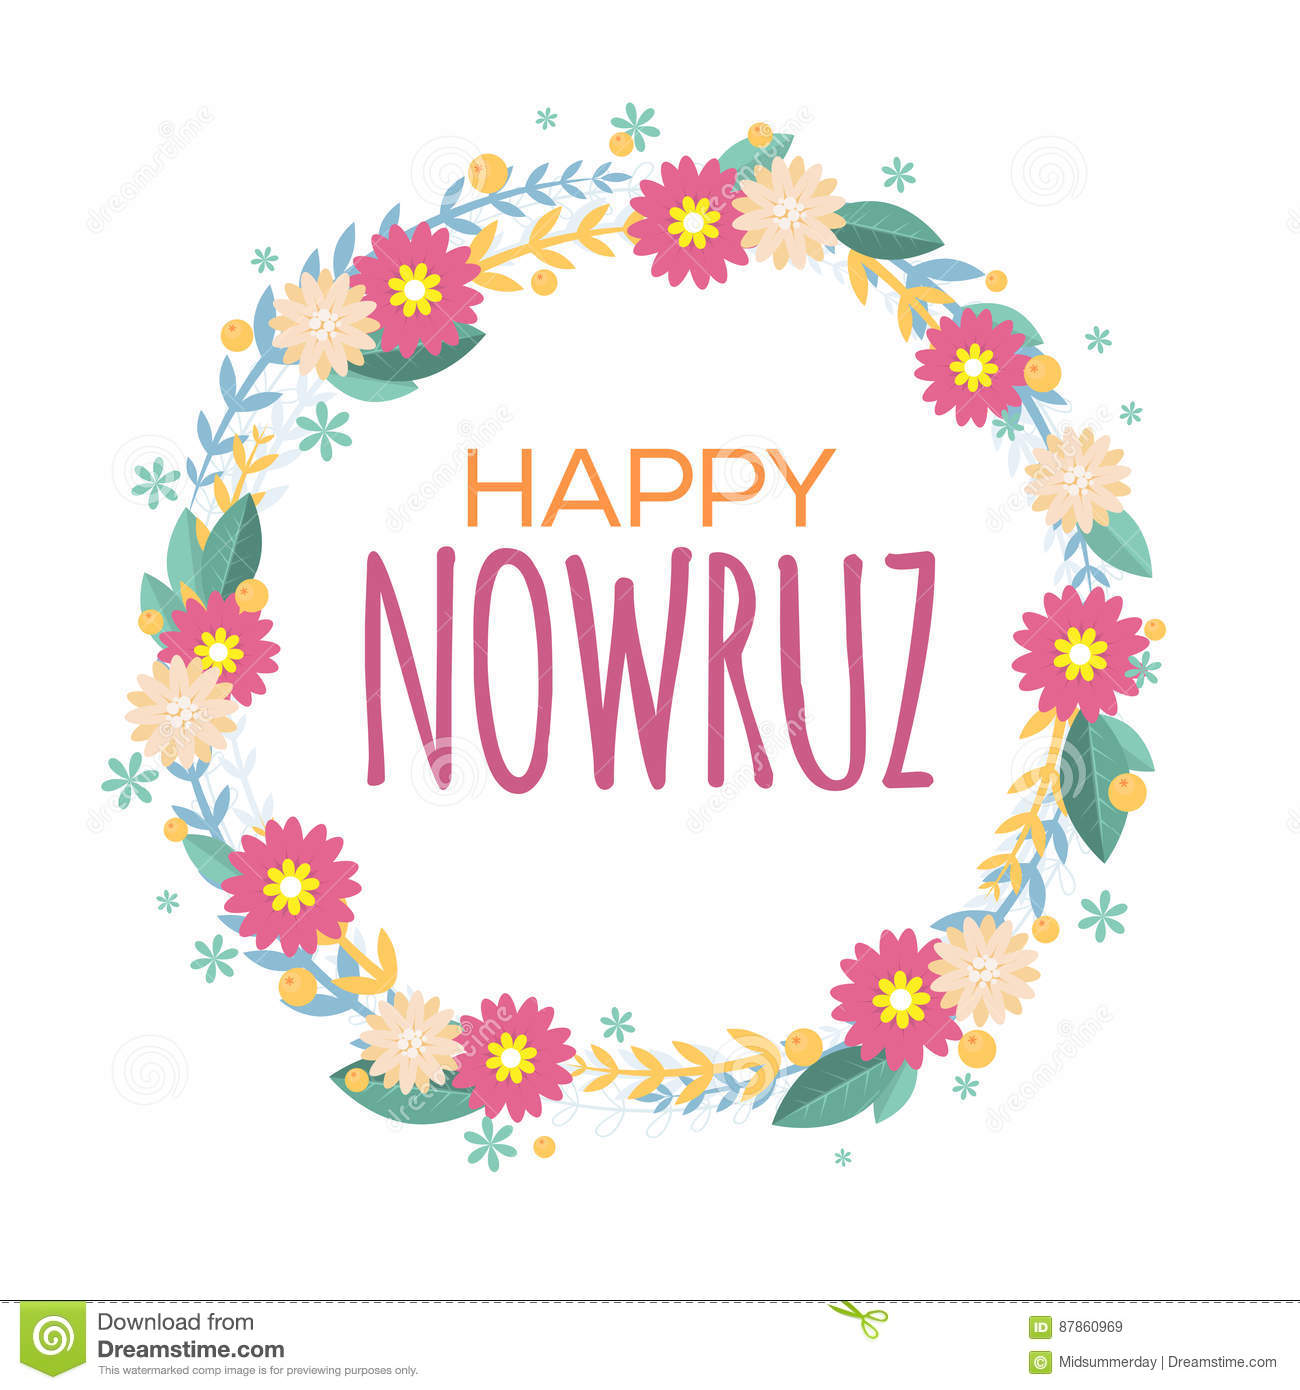 Happy nowruz greeting card with flowers and leaves iranian happy nowruz greeting card with flowers and leaves iranian persian new year march equinox colorful floral wreath kristyandbryce Gallery